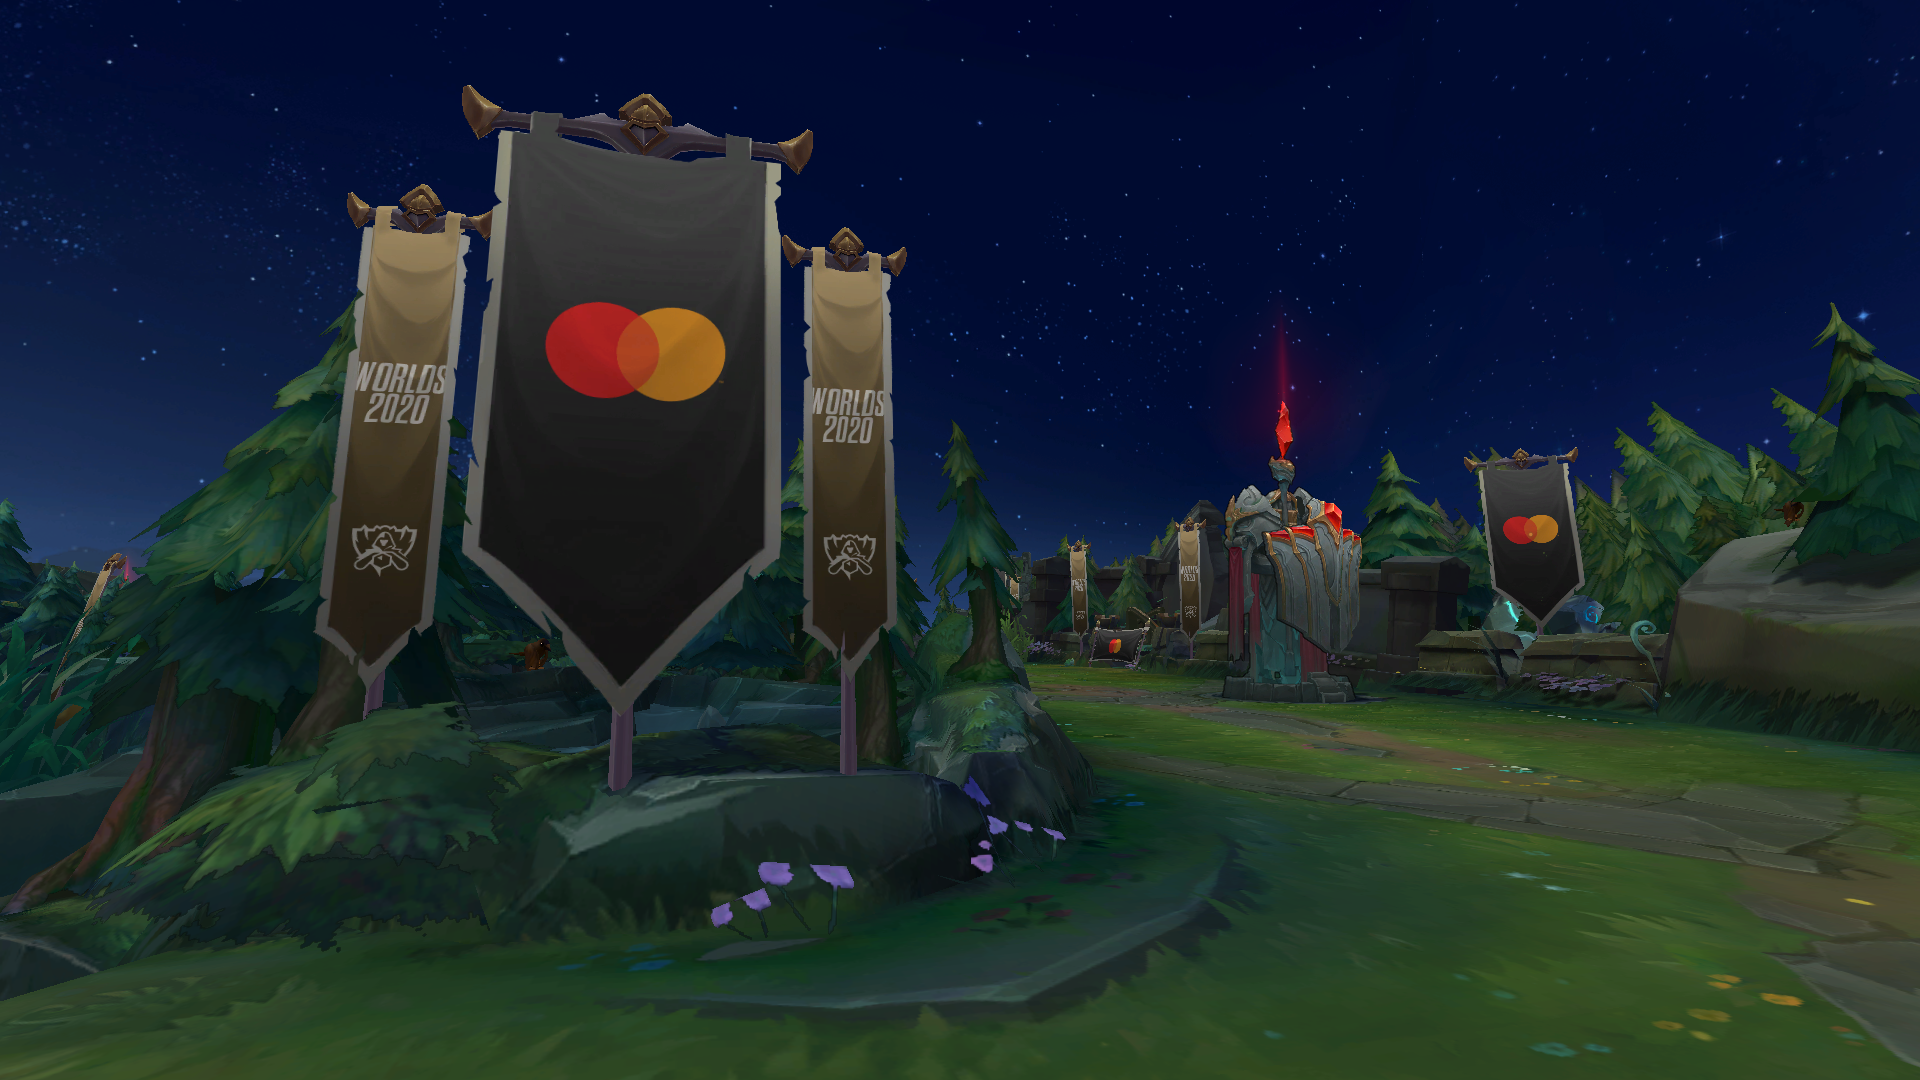 League of Legends Arena Banners